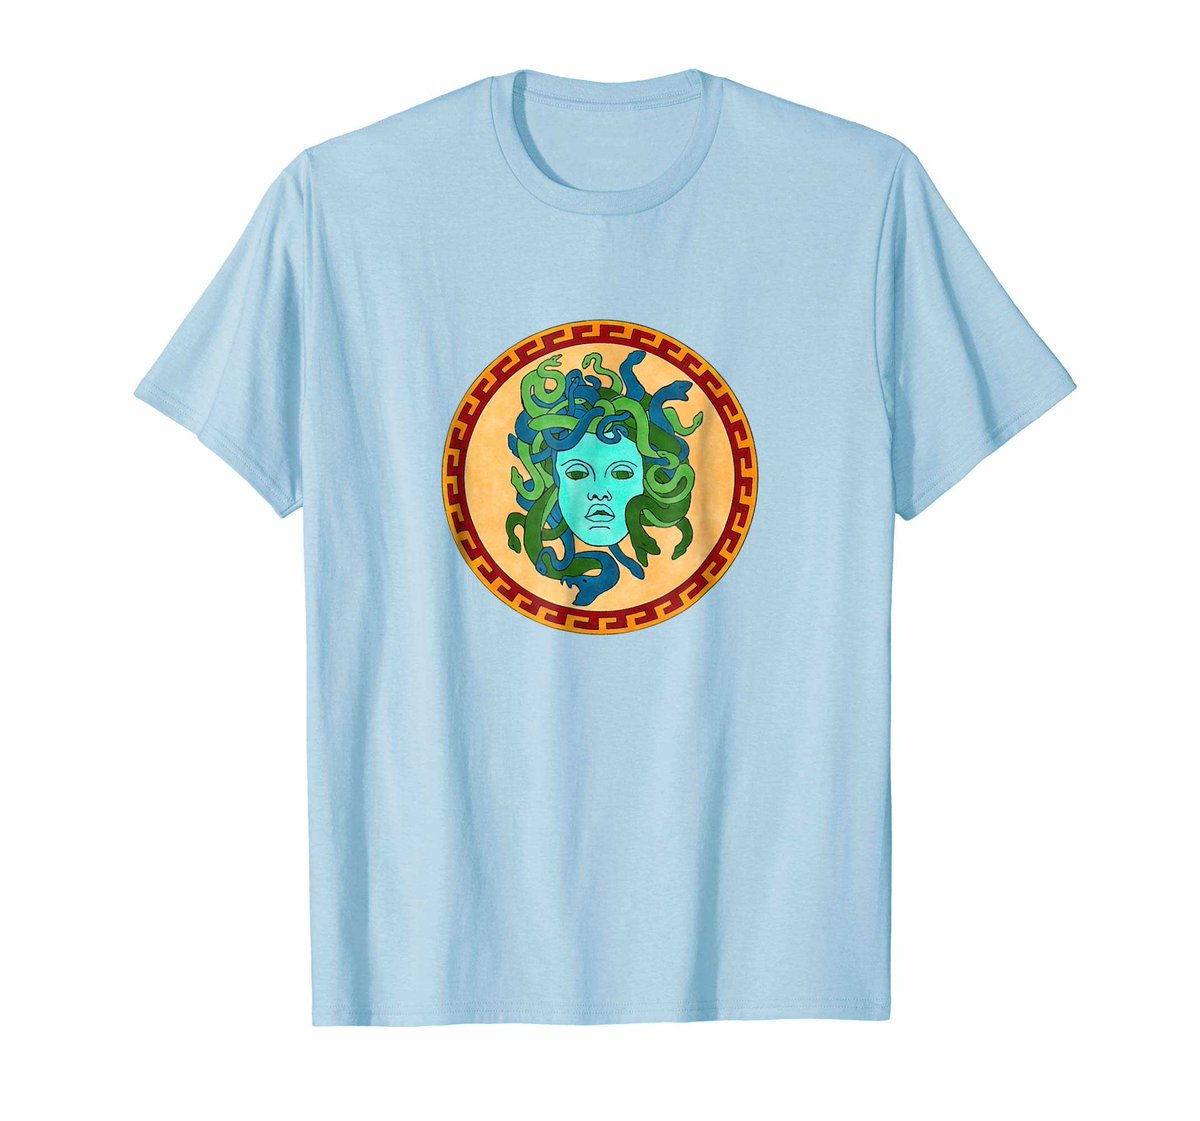 Poison Design - Medusa Gorgon Face Greek Mythology Poison Design https://amzn.to/2TdluJY  Get this awesome Tshirt @Amazon @Society6Max @AmazonMerchRTs #Medusa #mythology #greece #greeks #hercules #ancient #coin #tee #gift #tshirt #art #handmade #rt #FridayMotivation